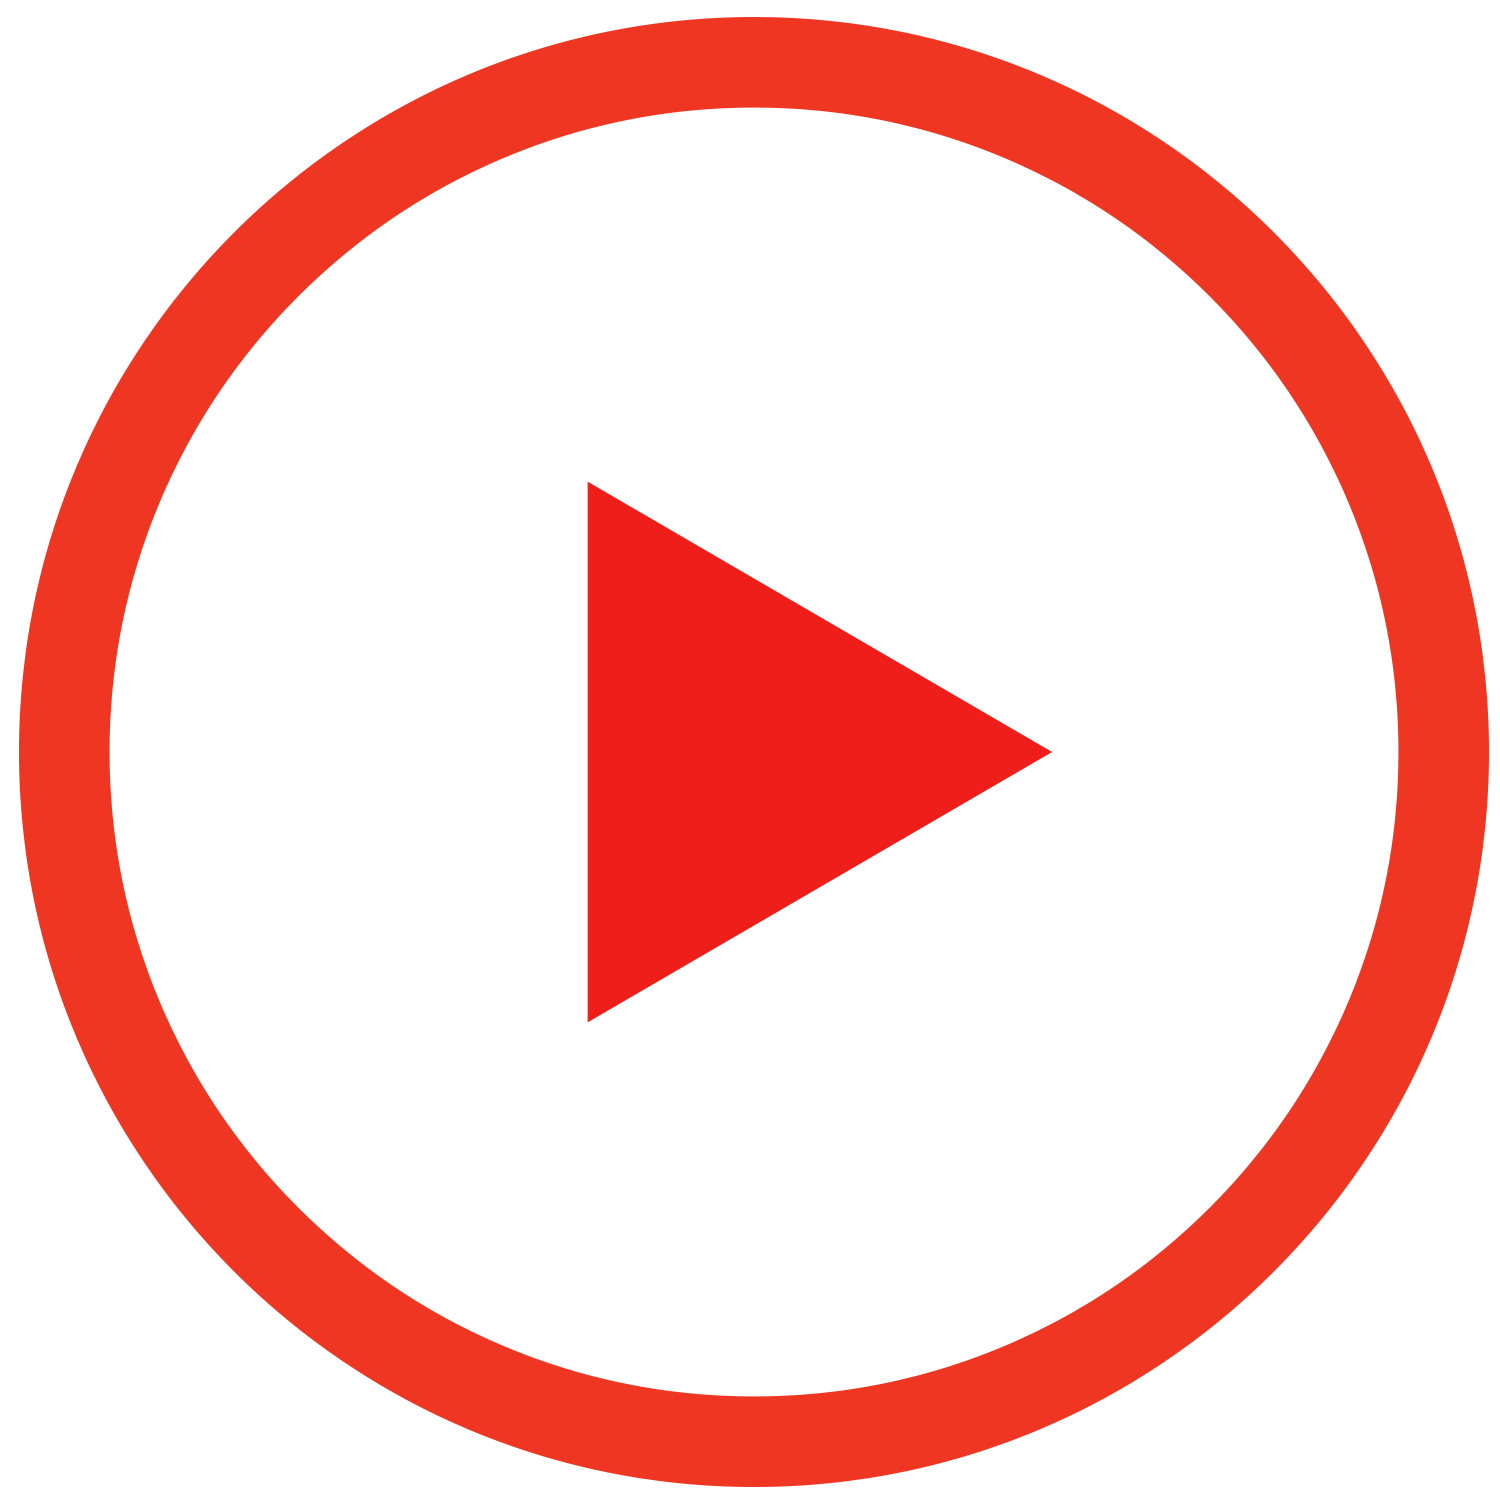 Play Button Png 12799